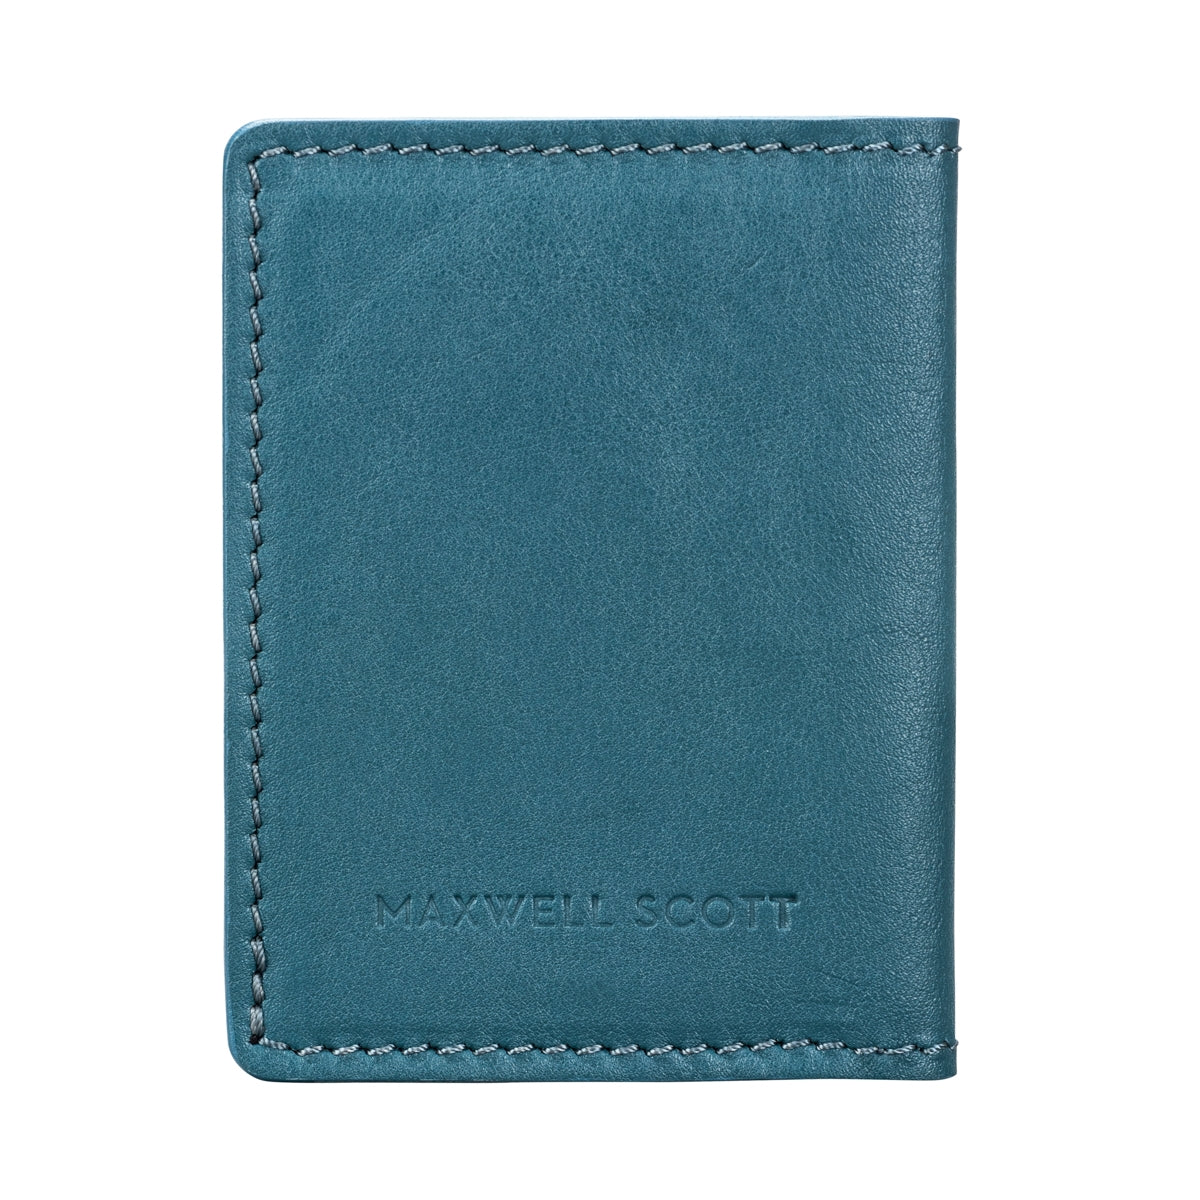 Image 3 of the 'Vallata' Petrol Leather Oyster Card Holder